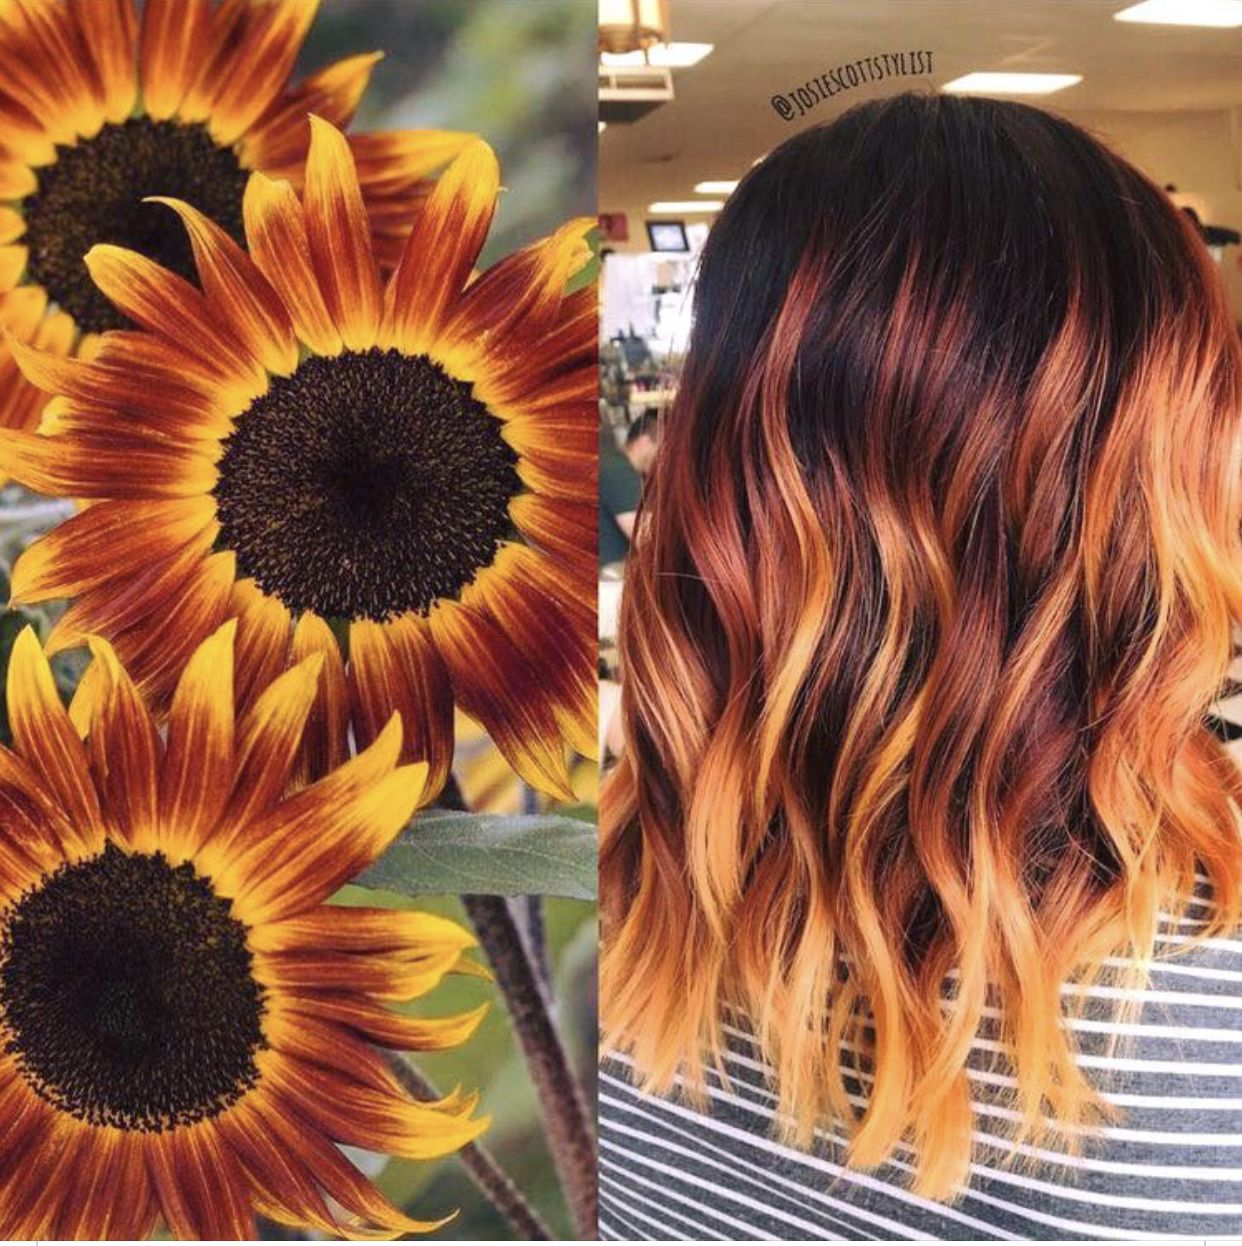 Creating Beautiful Styles With Sunflower Hair Care